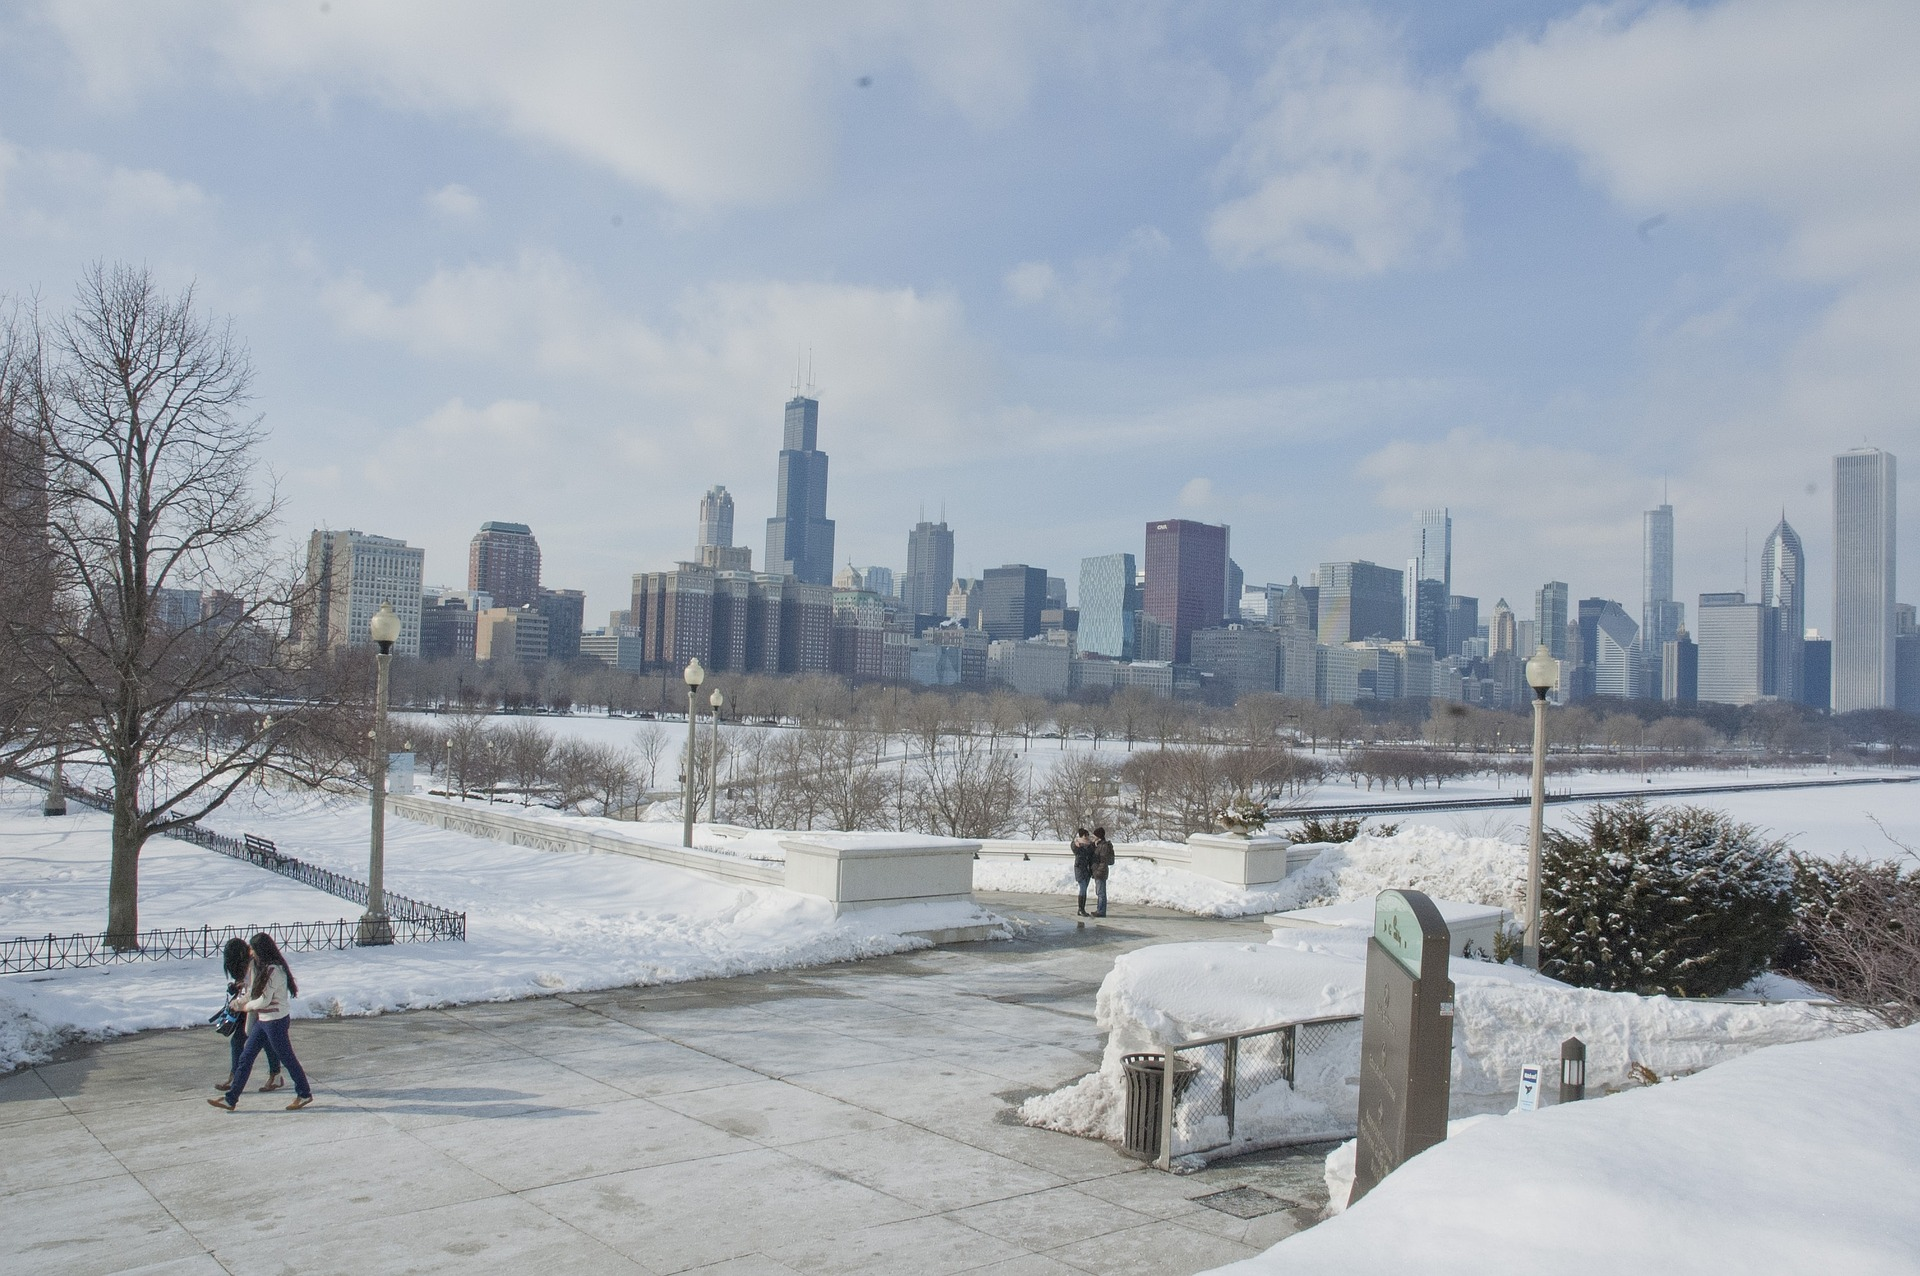 Wintertime in Chi-town